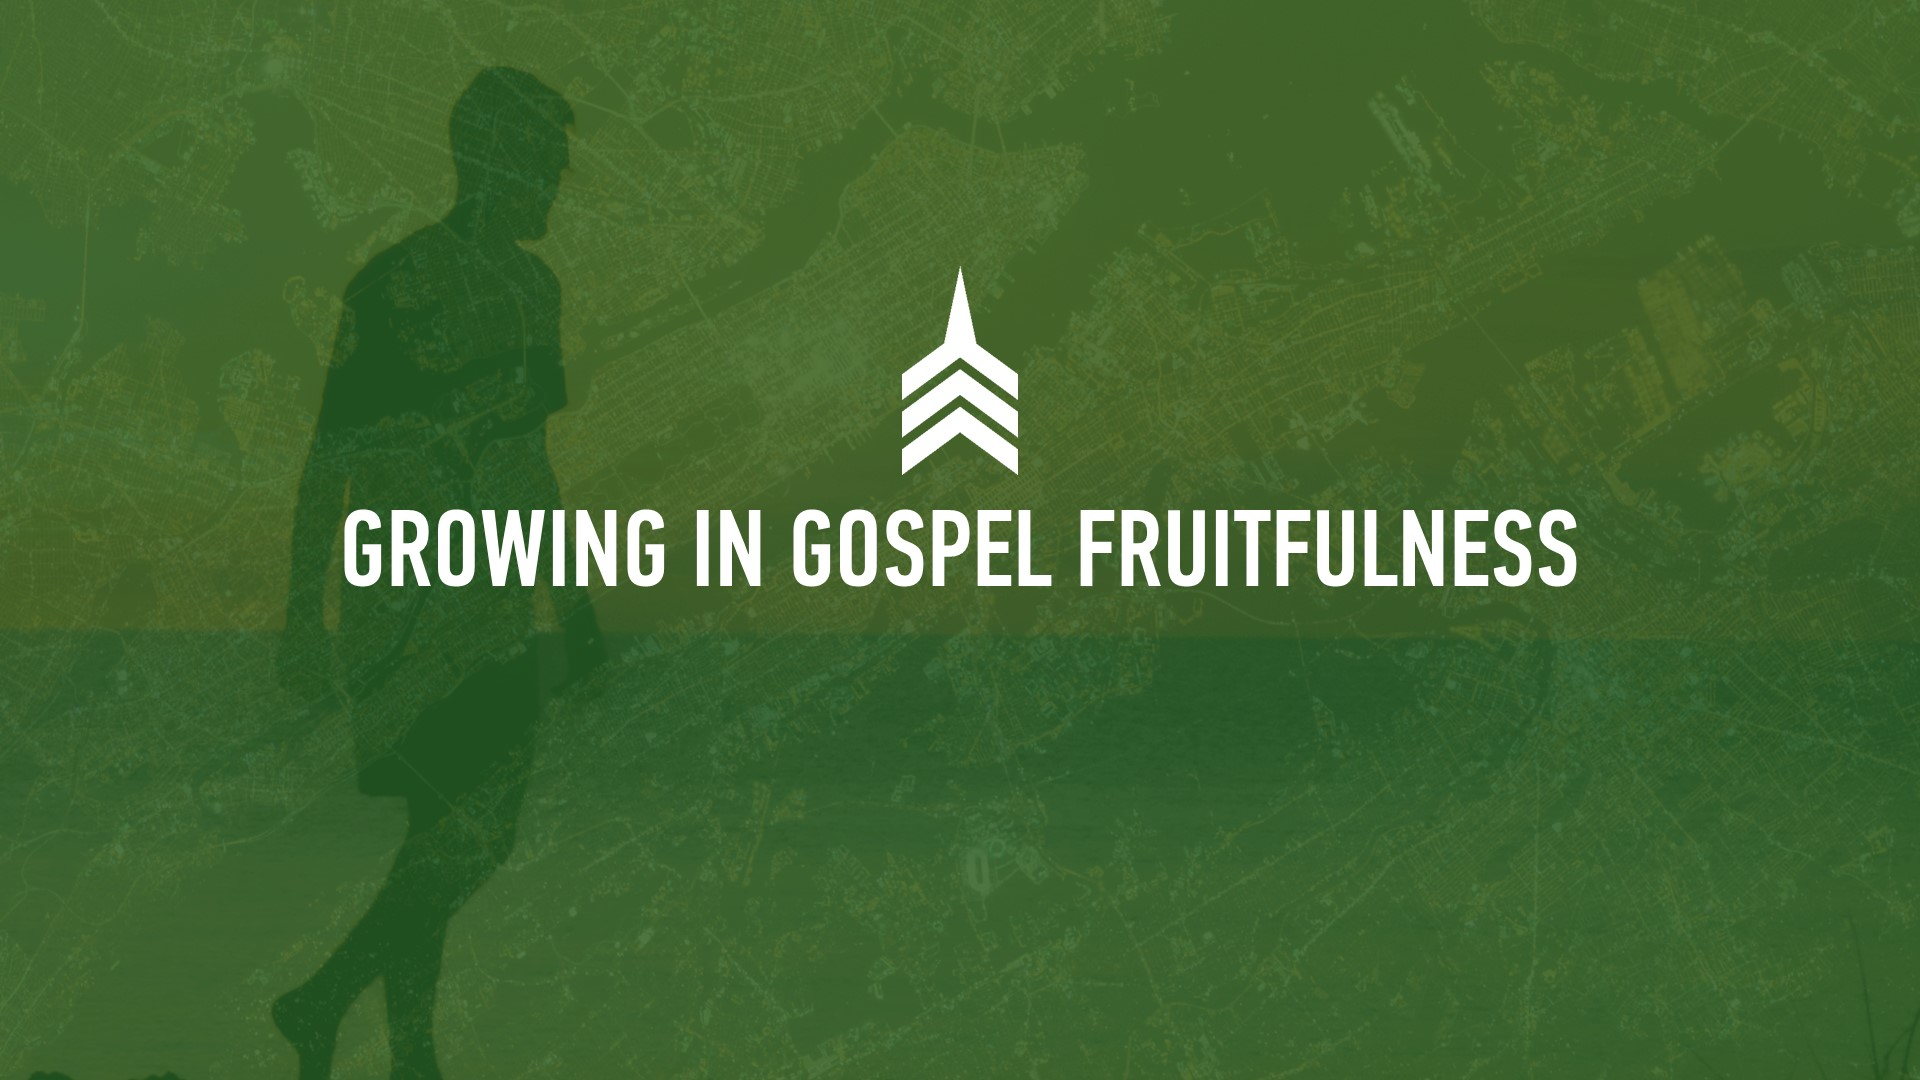 20190929 GROWING IN GOSPEL FRUITFULNESS.JPG